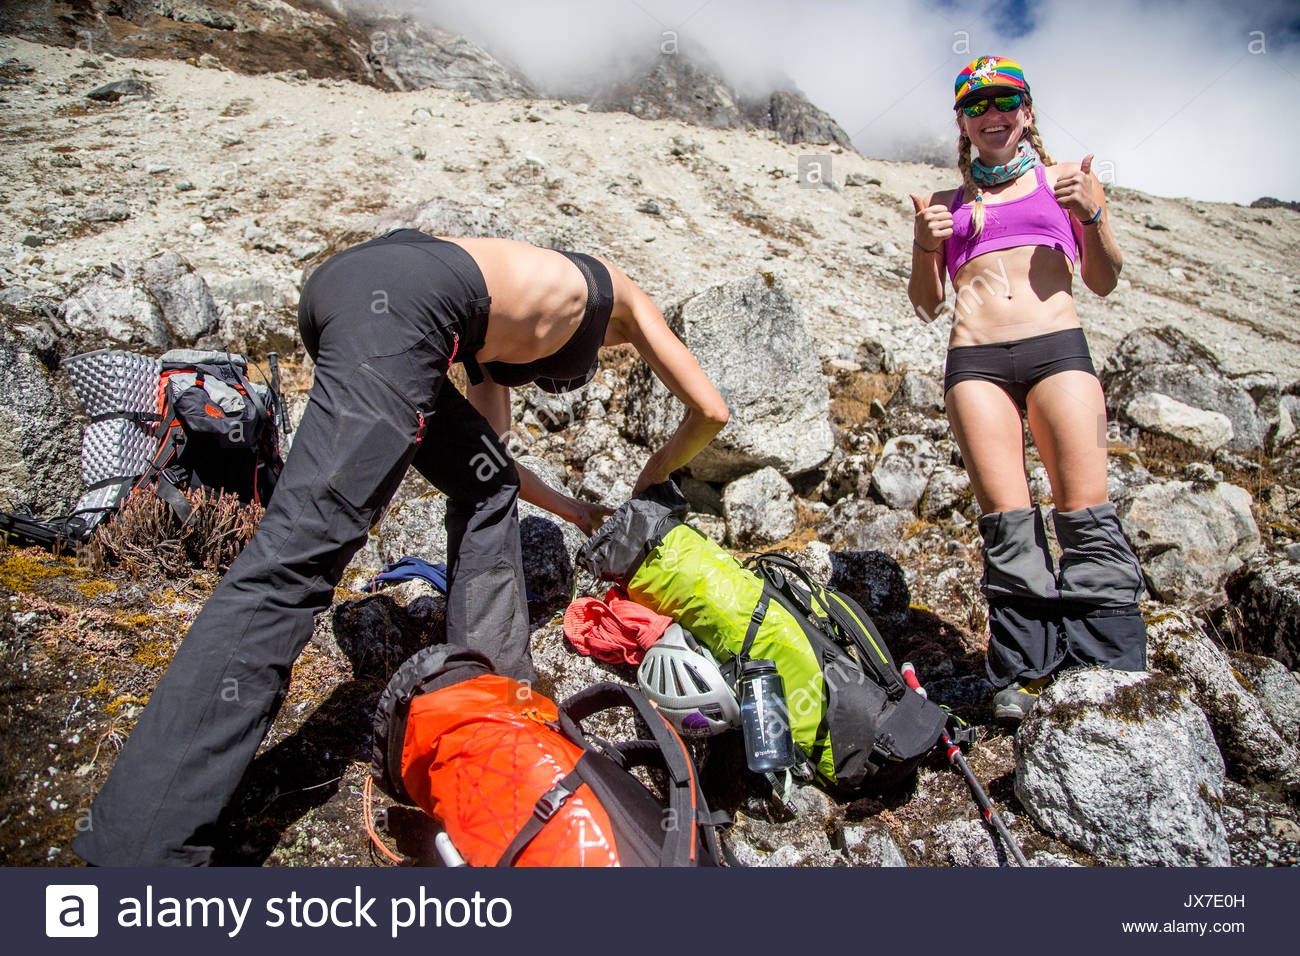 Expedition members changing their clothes and packing. - Stock Image